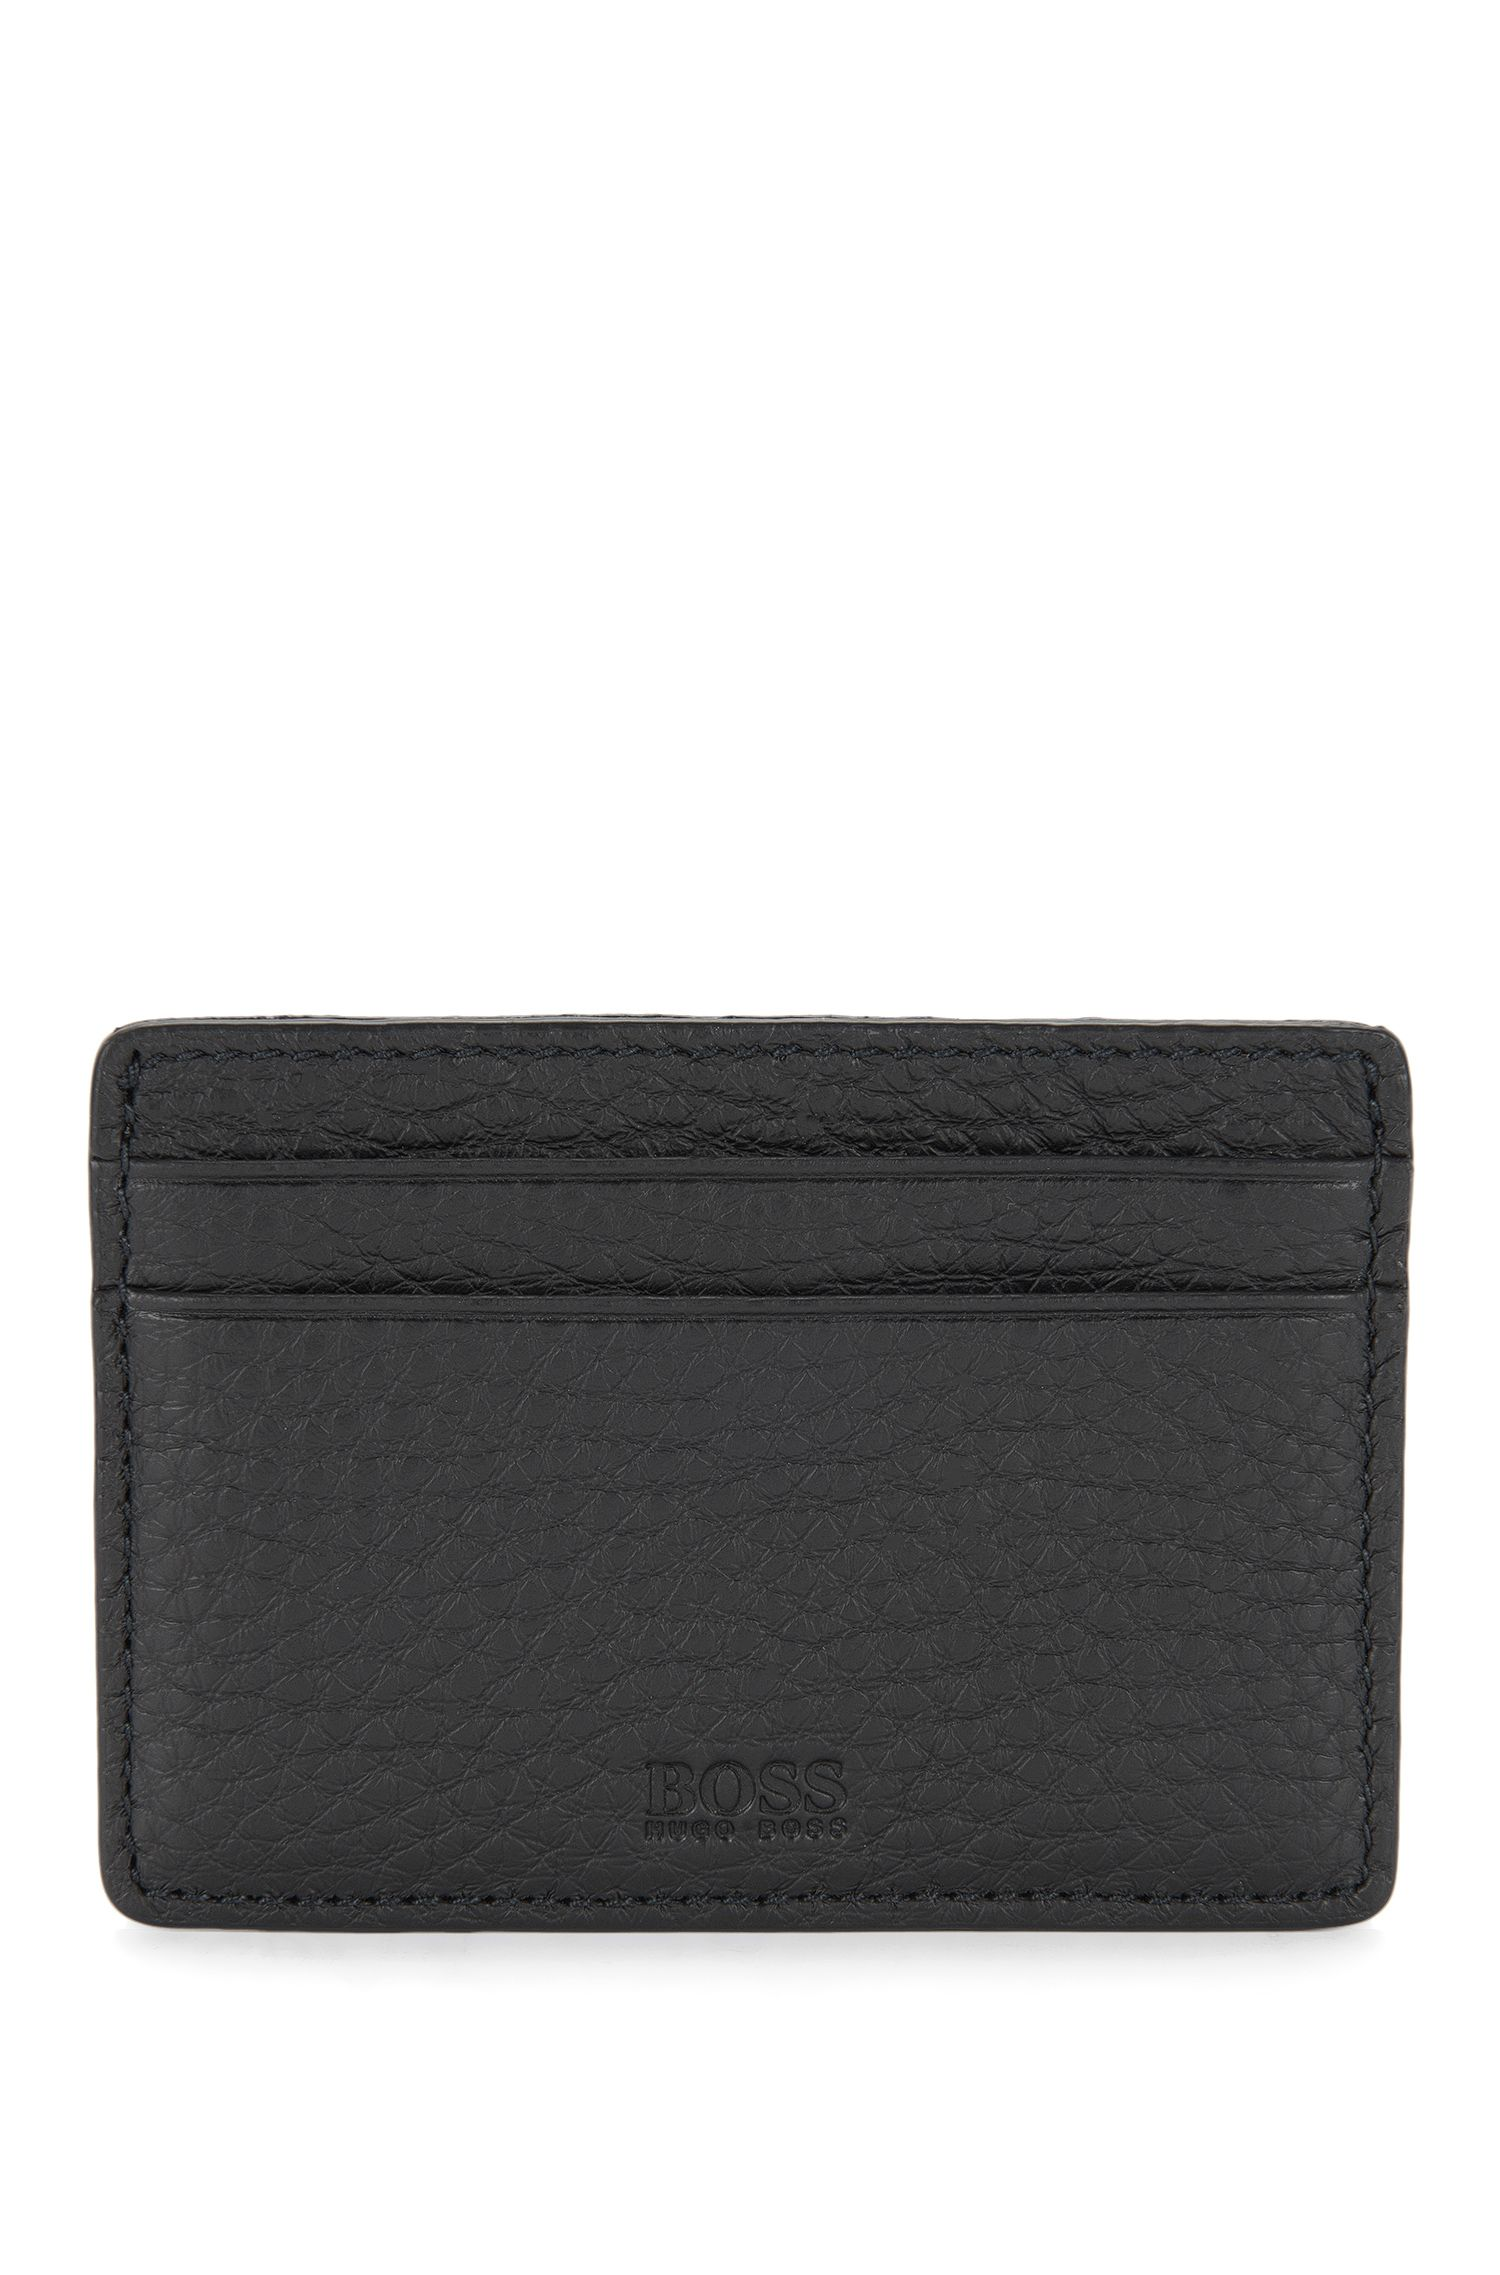 Leather Card Holder | Traveller S Card